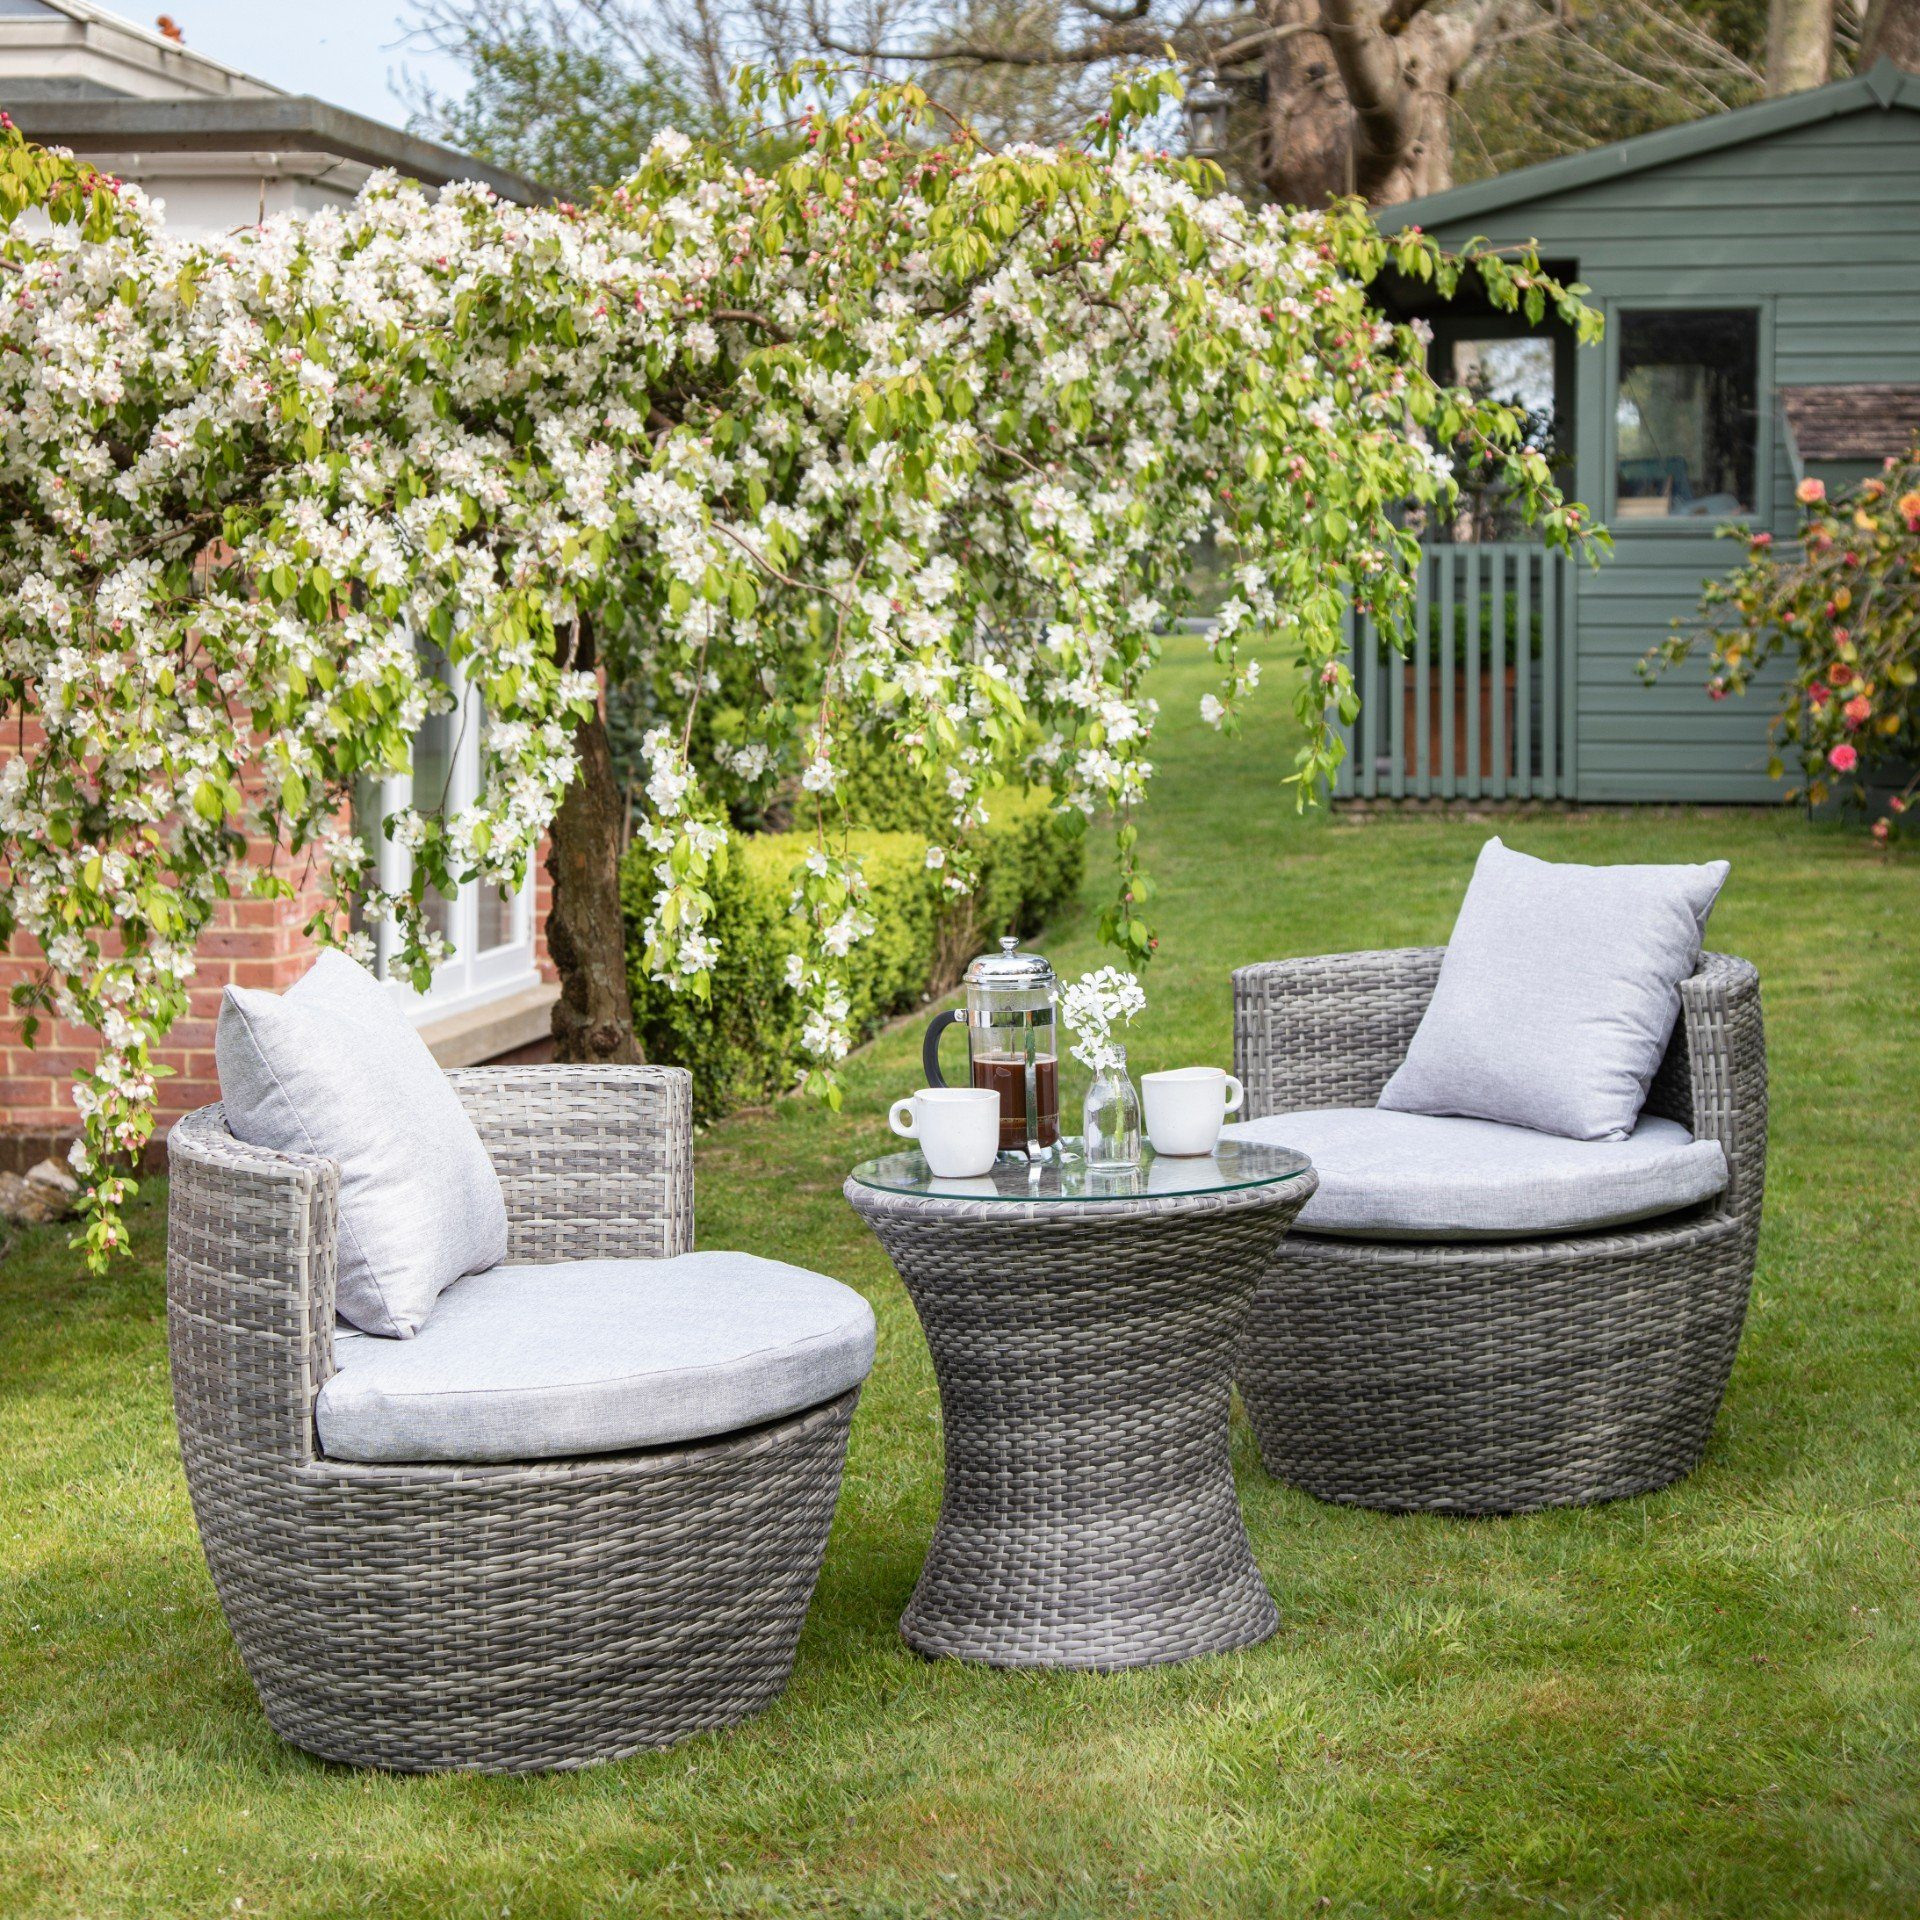 2 Seater Rattan Egg Chair Bistro Set - Grey - In Stock Date - 2nd June 2020 - Laura James